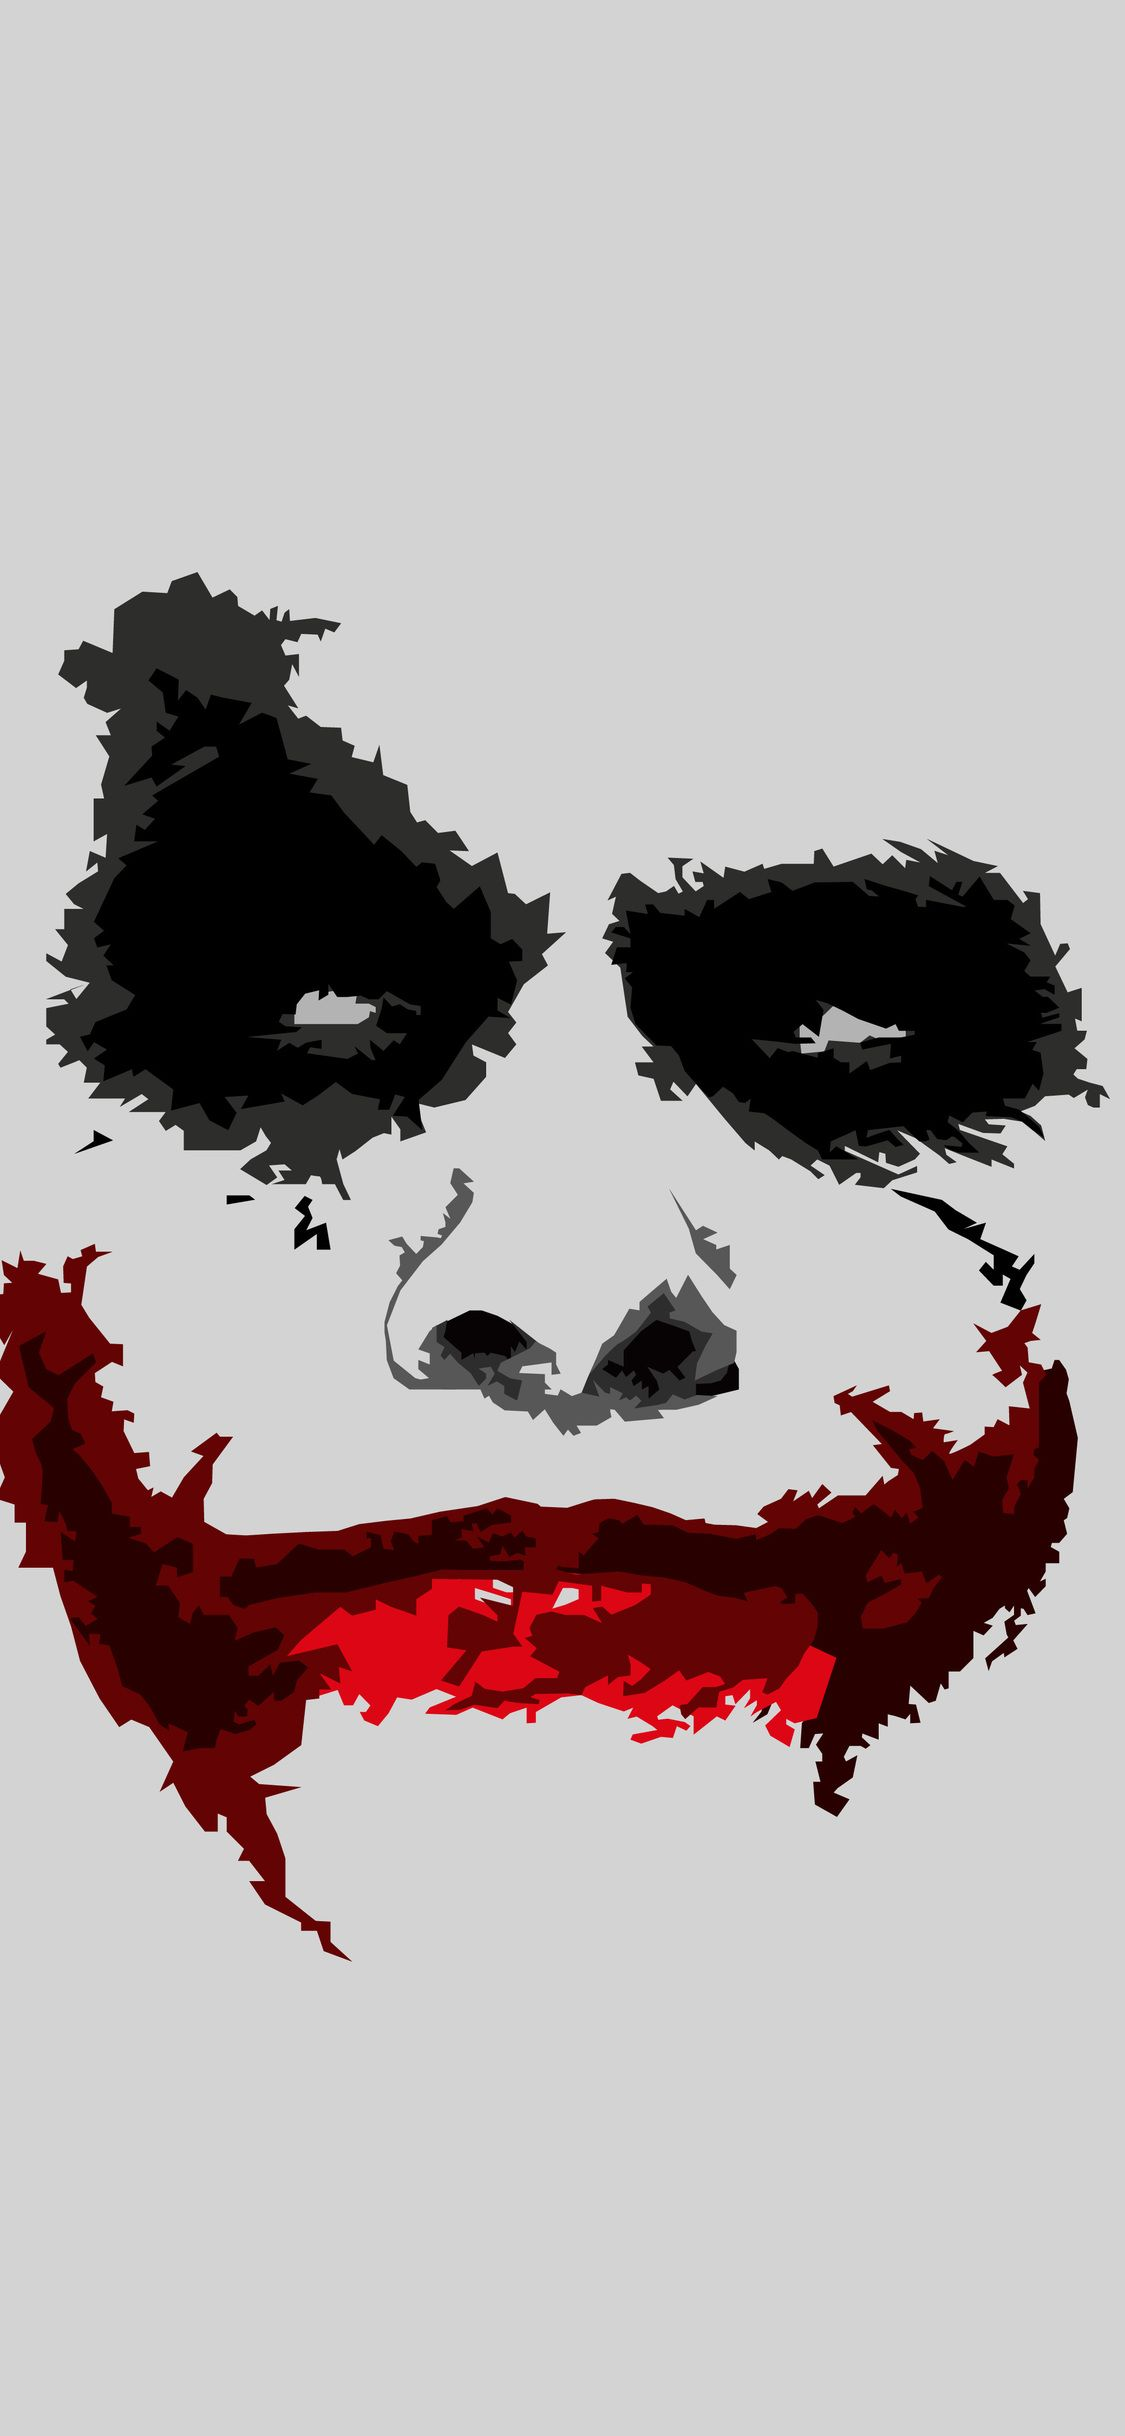 Joker 8k Minimalism Iphone X Joker Iphone Wallpaper Joker